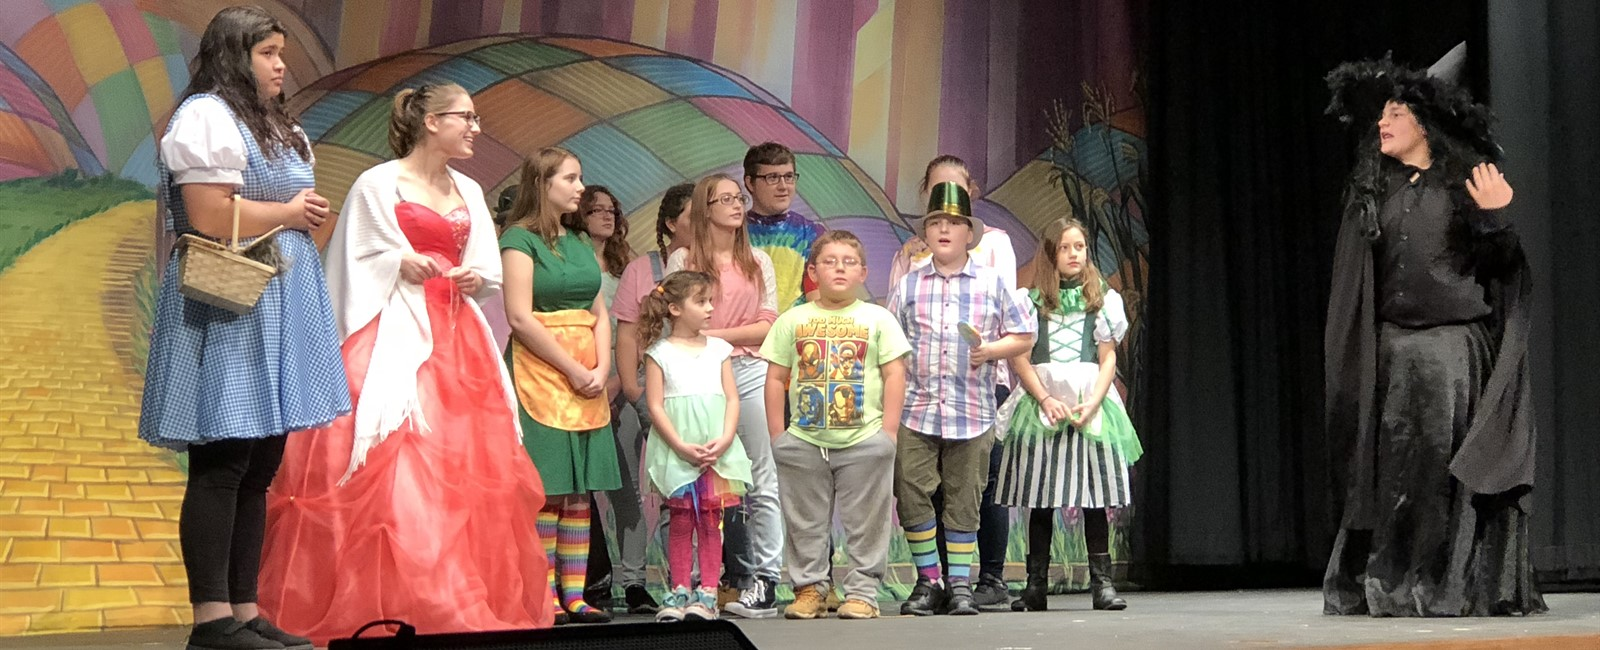 Sebring's Drama Department performed The Wonderful Wizard of Oz by Michelle Vacca